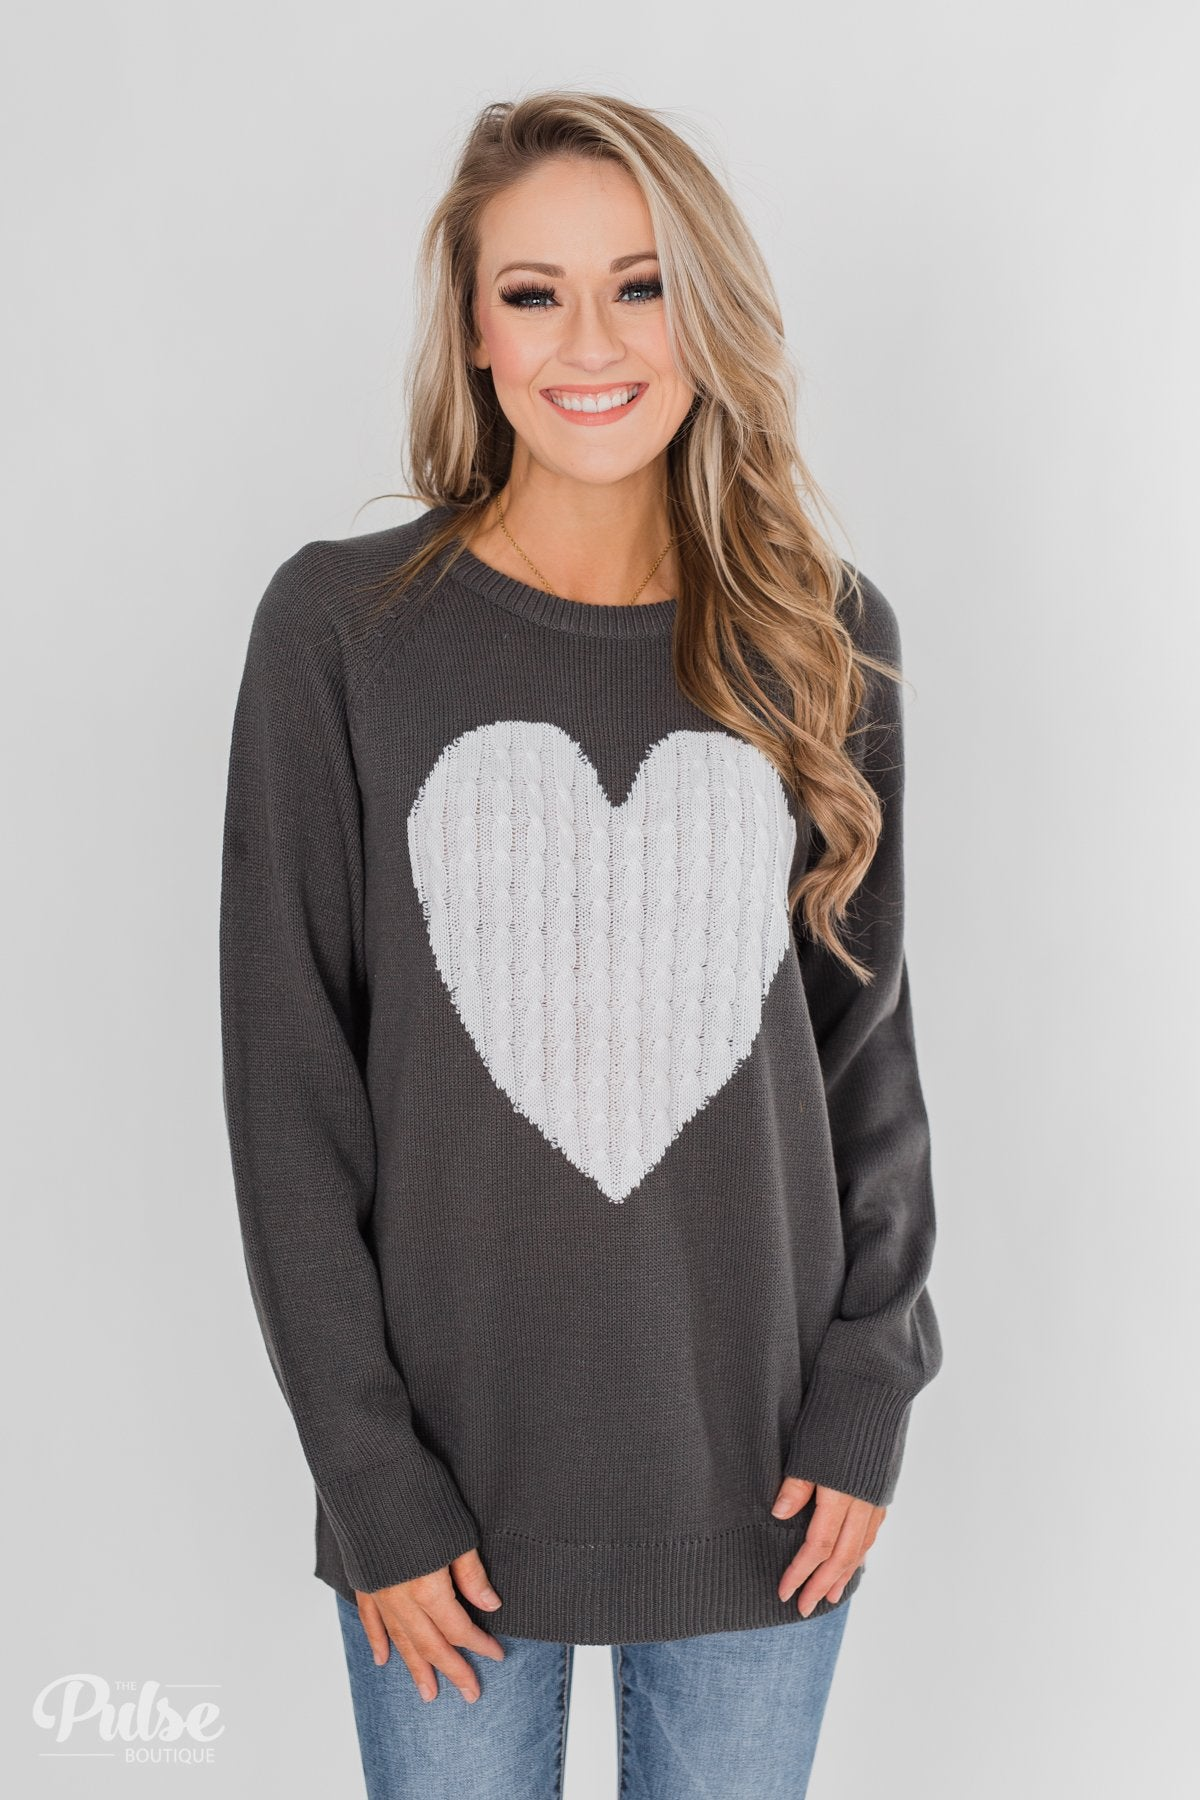 Love Your Life Knitted Heart Sweater - Charcoal